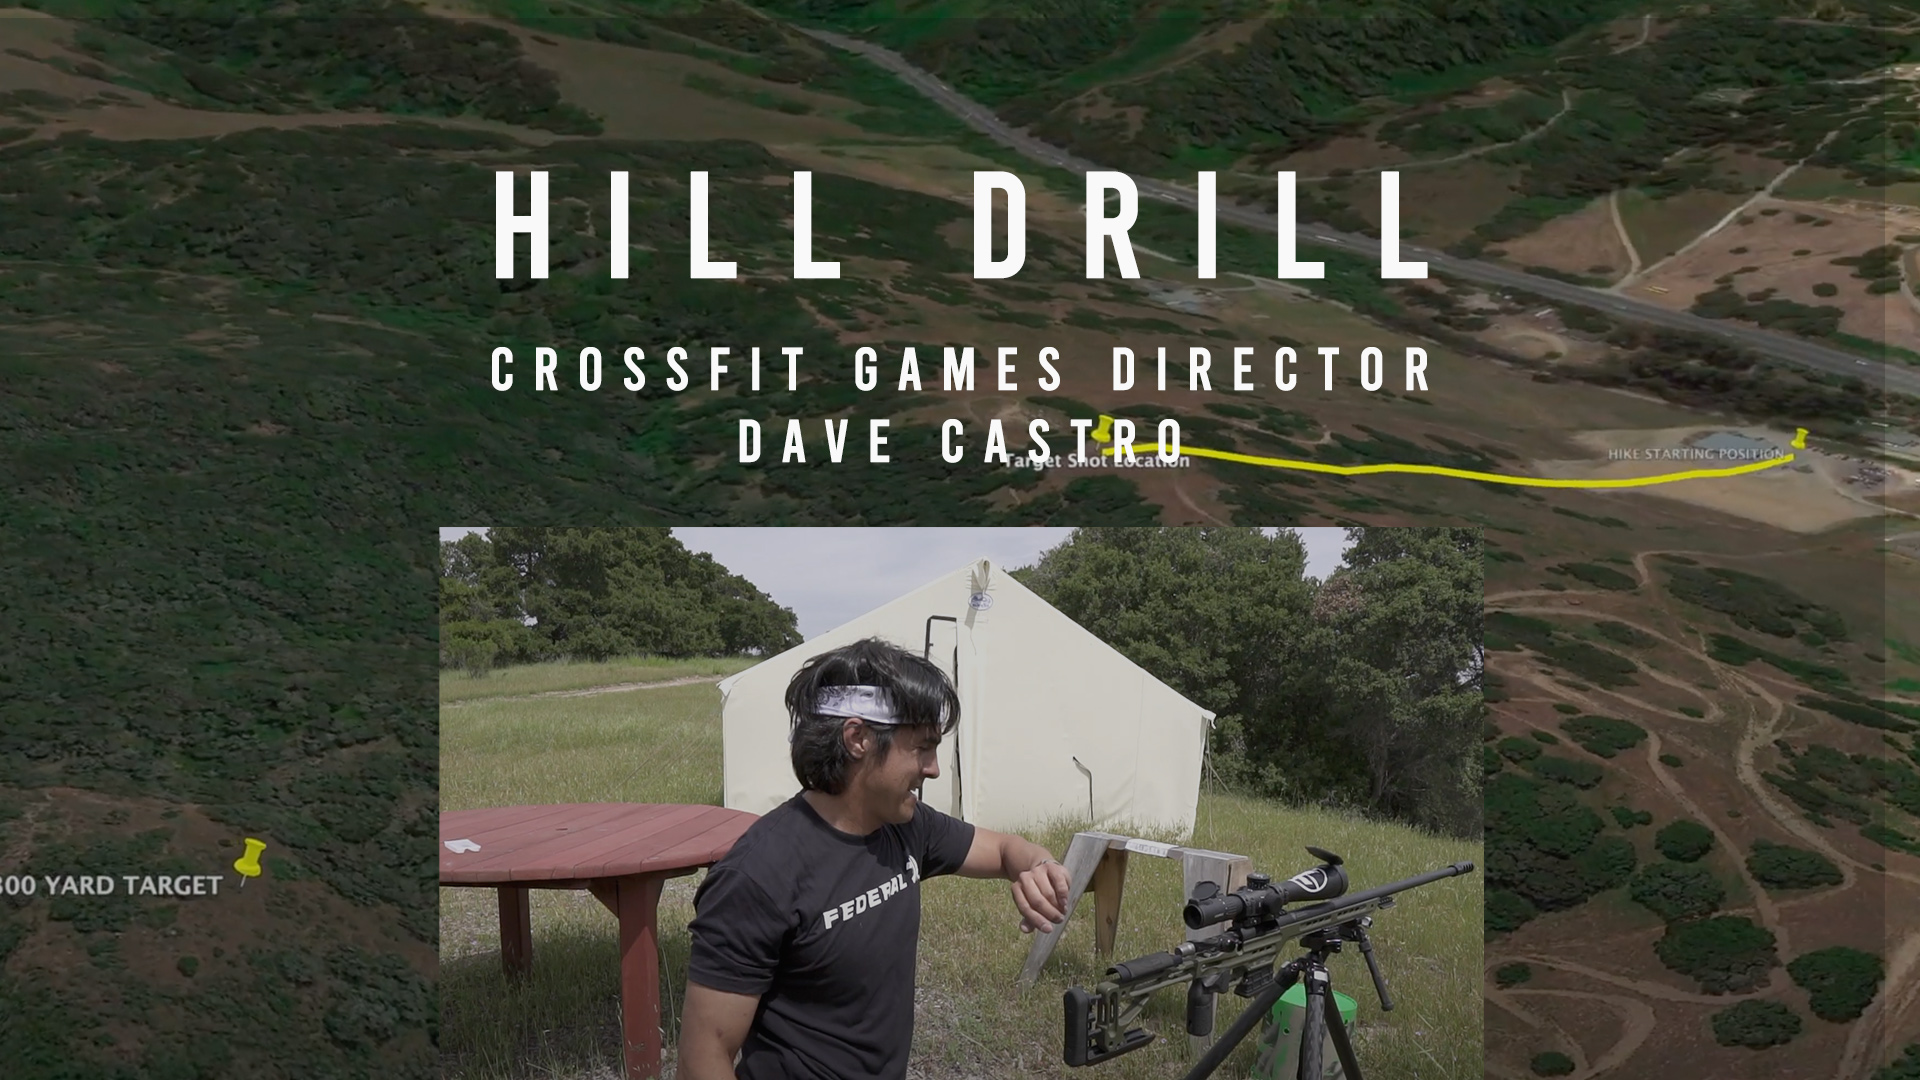 Hill Drill Michaal McCoy Videography